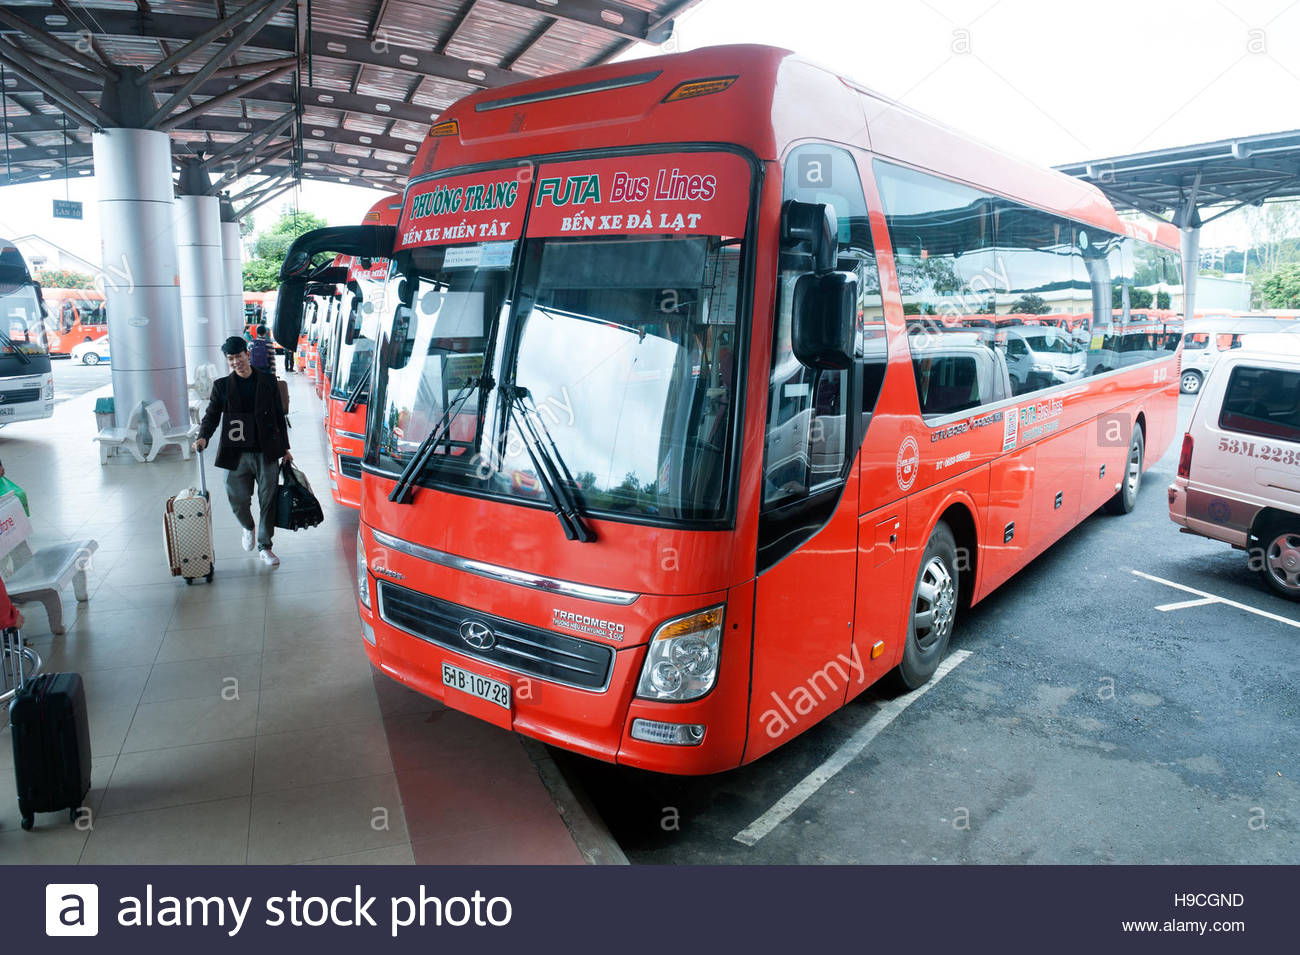 Dalat Vietnam Phuong Trang Futa Bus lines at the intercity bus terminal. - Stock Image